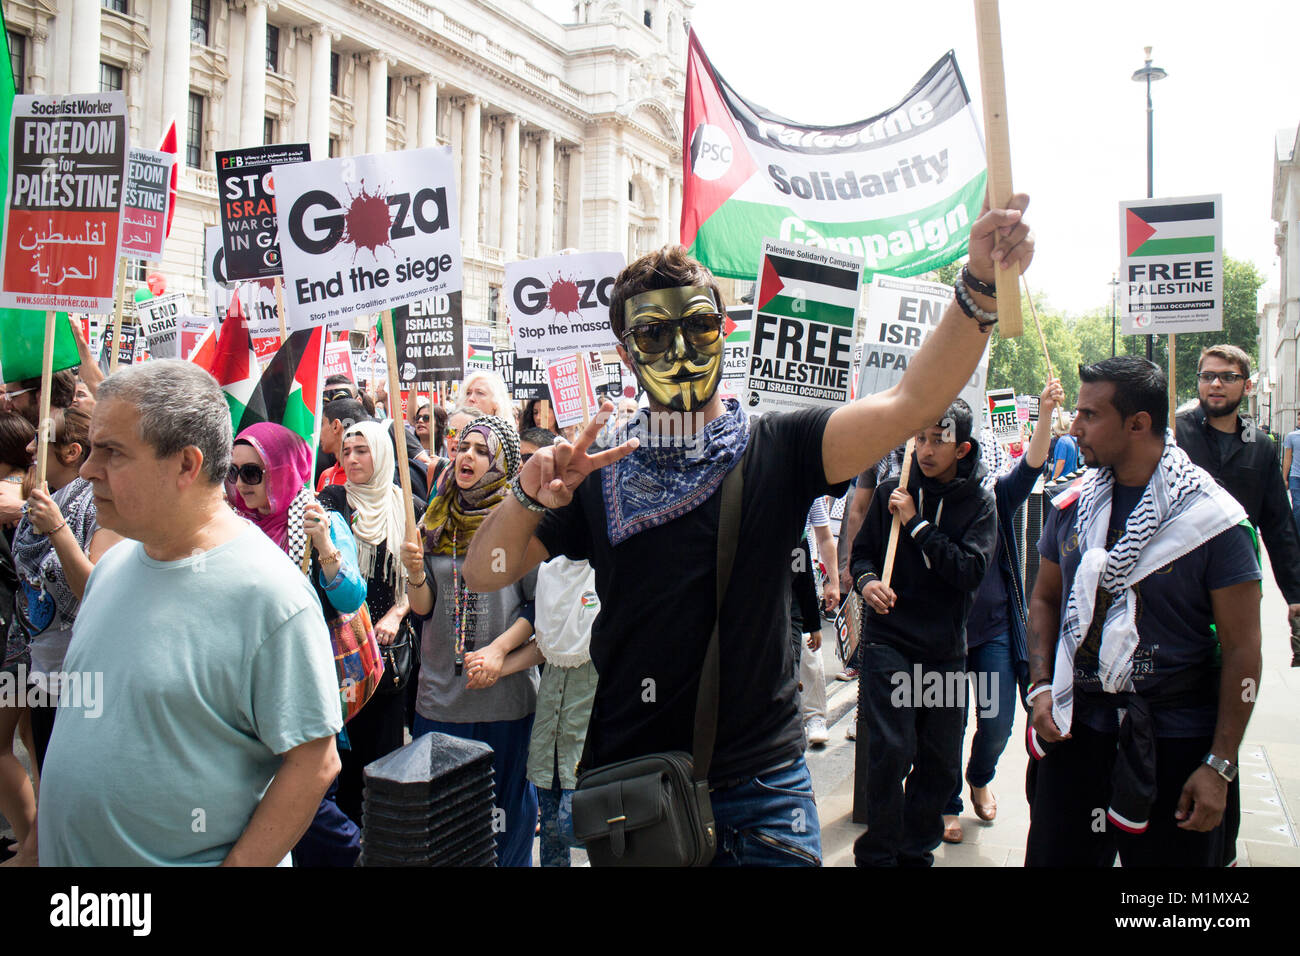 Stop the killing, Gaza March - Stock Image